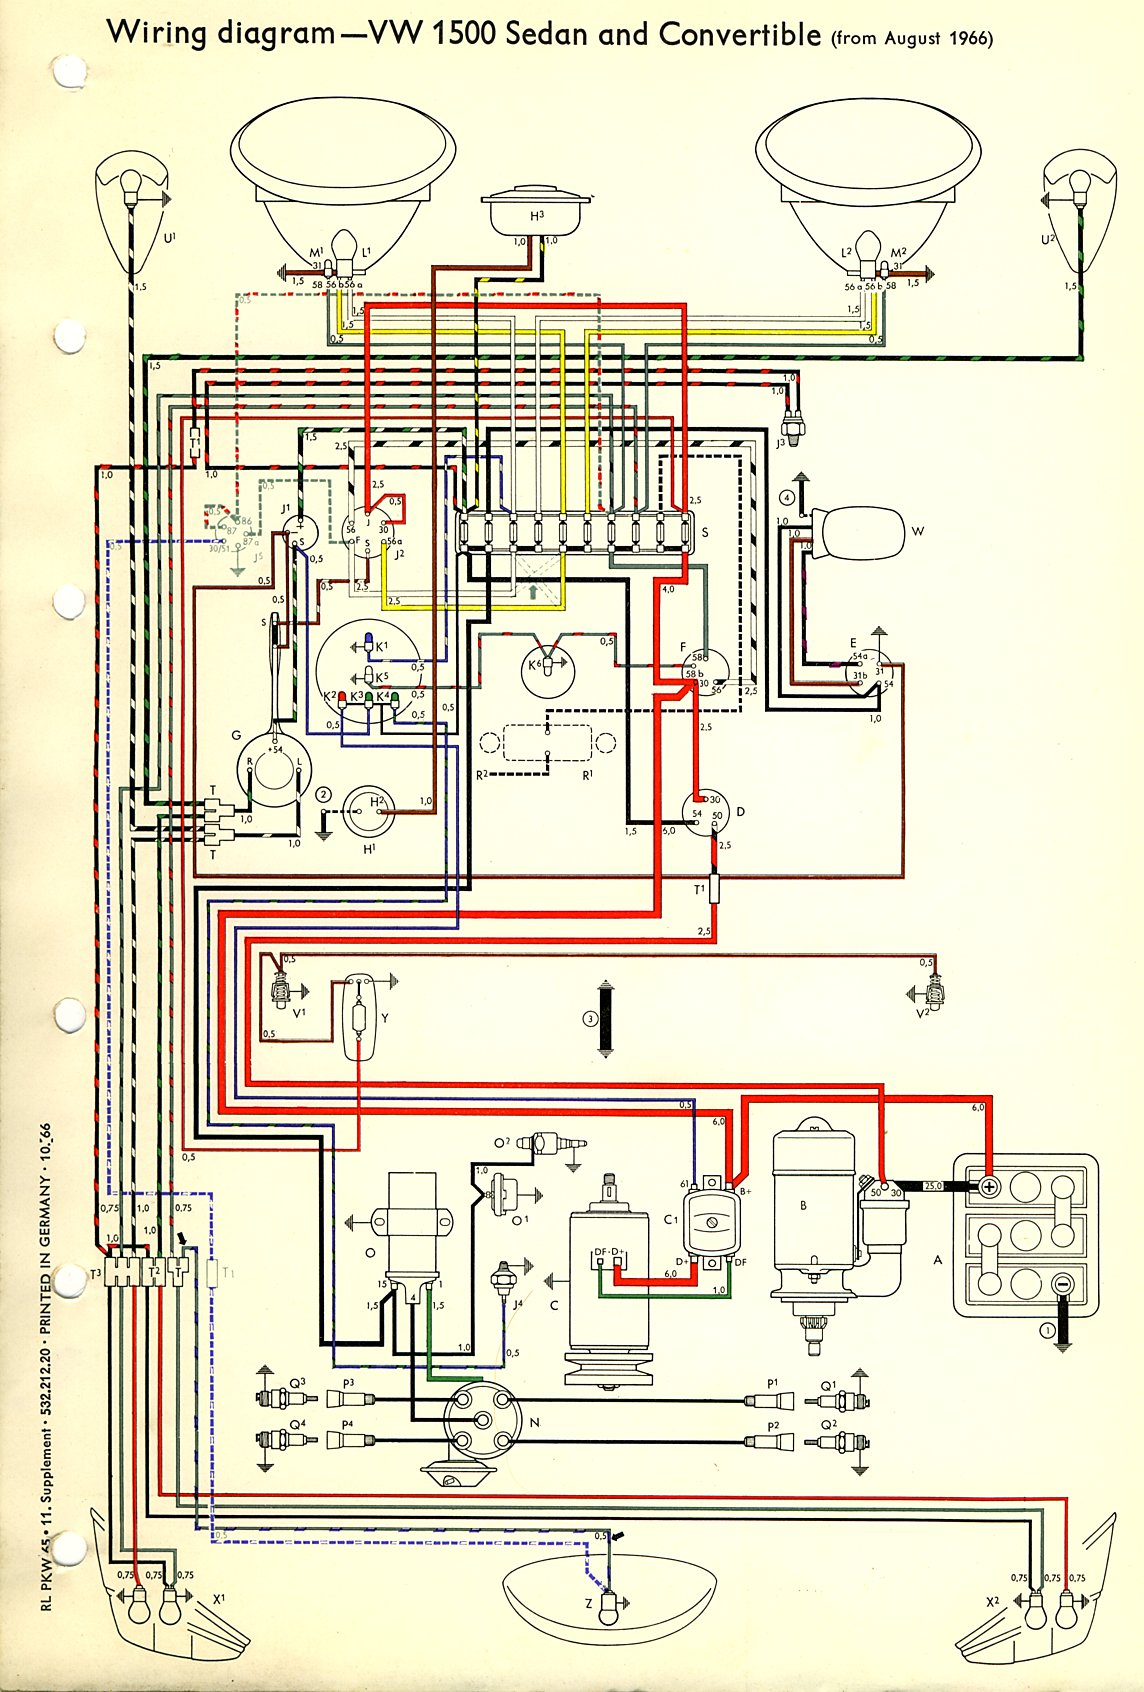 thesamba com type 1 wiring diagrams rh thesamba com 1967 vw beetle wiring diagram 1968 vw beetle wiring diagram